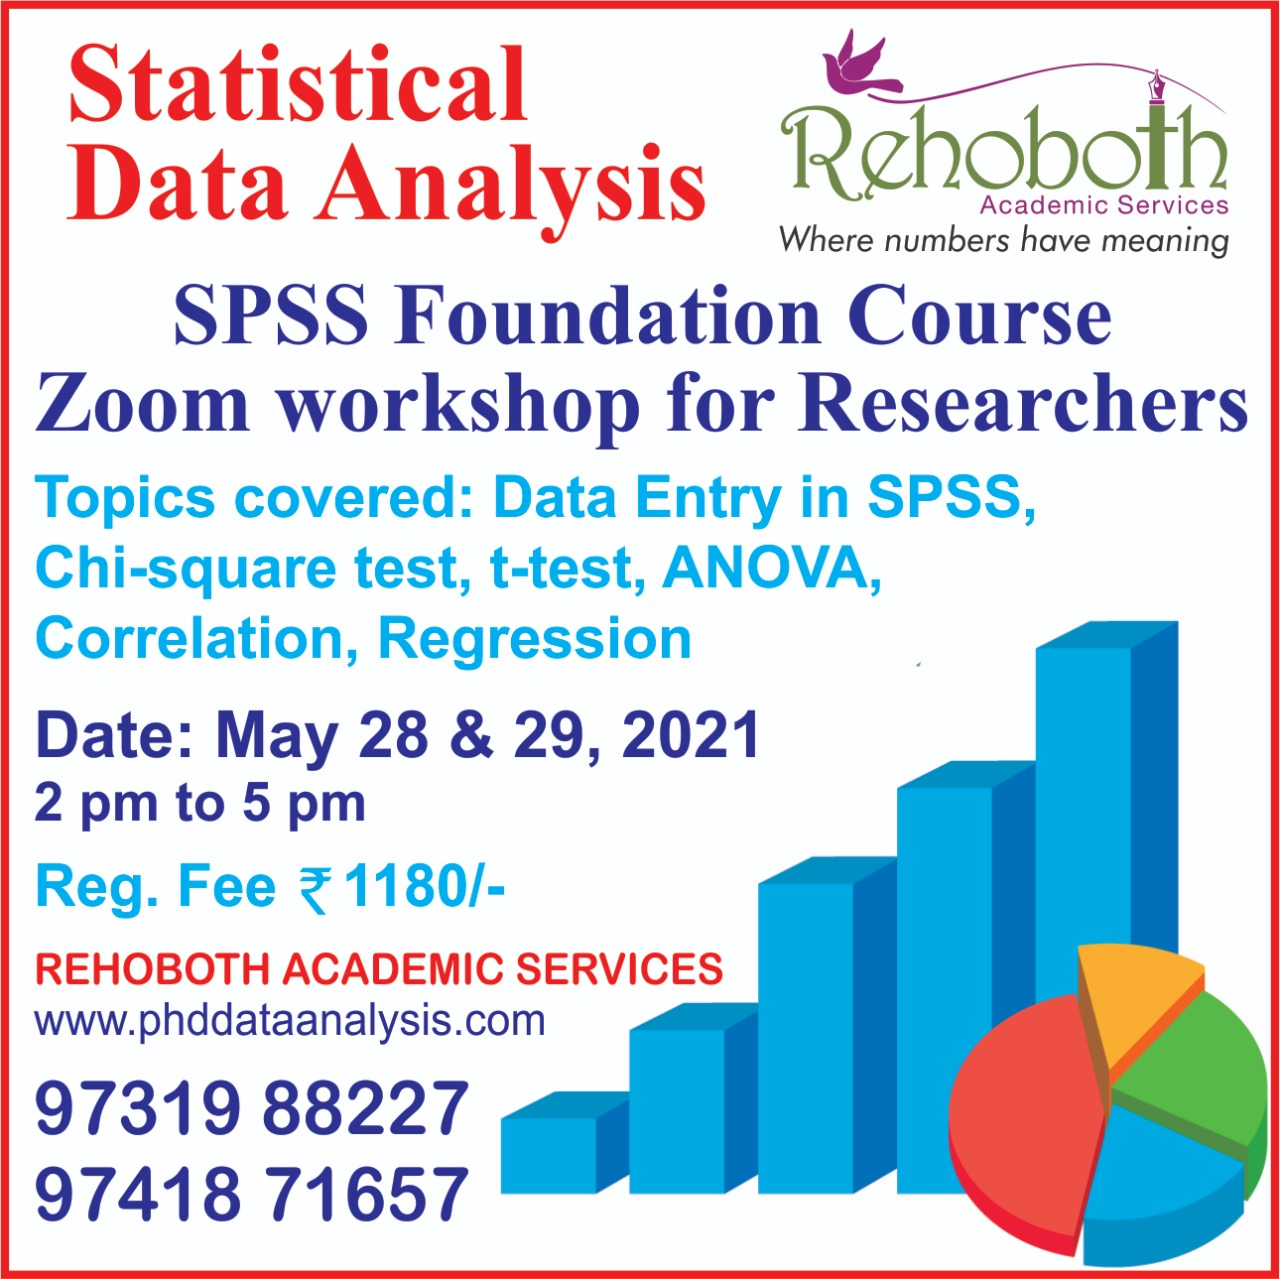 LEARN STATISTICAL ANALYSIS SPSS FOUNDATION WORKSHOP